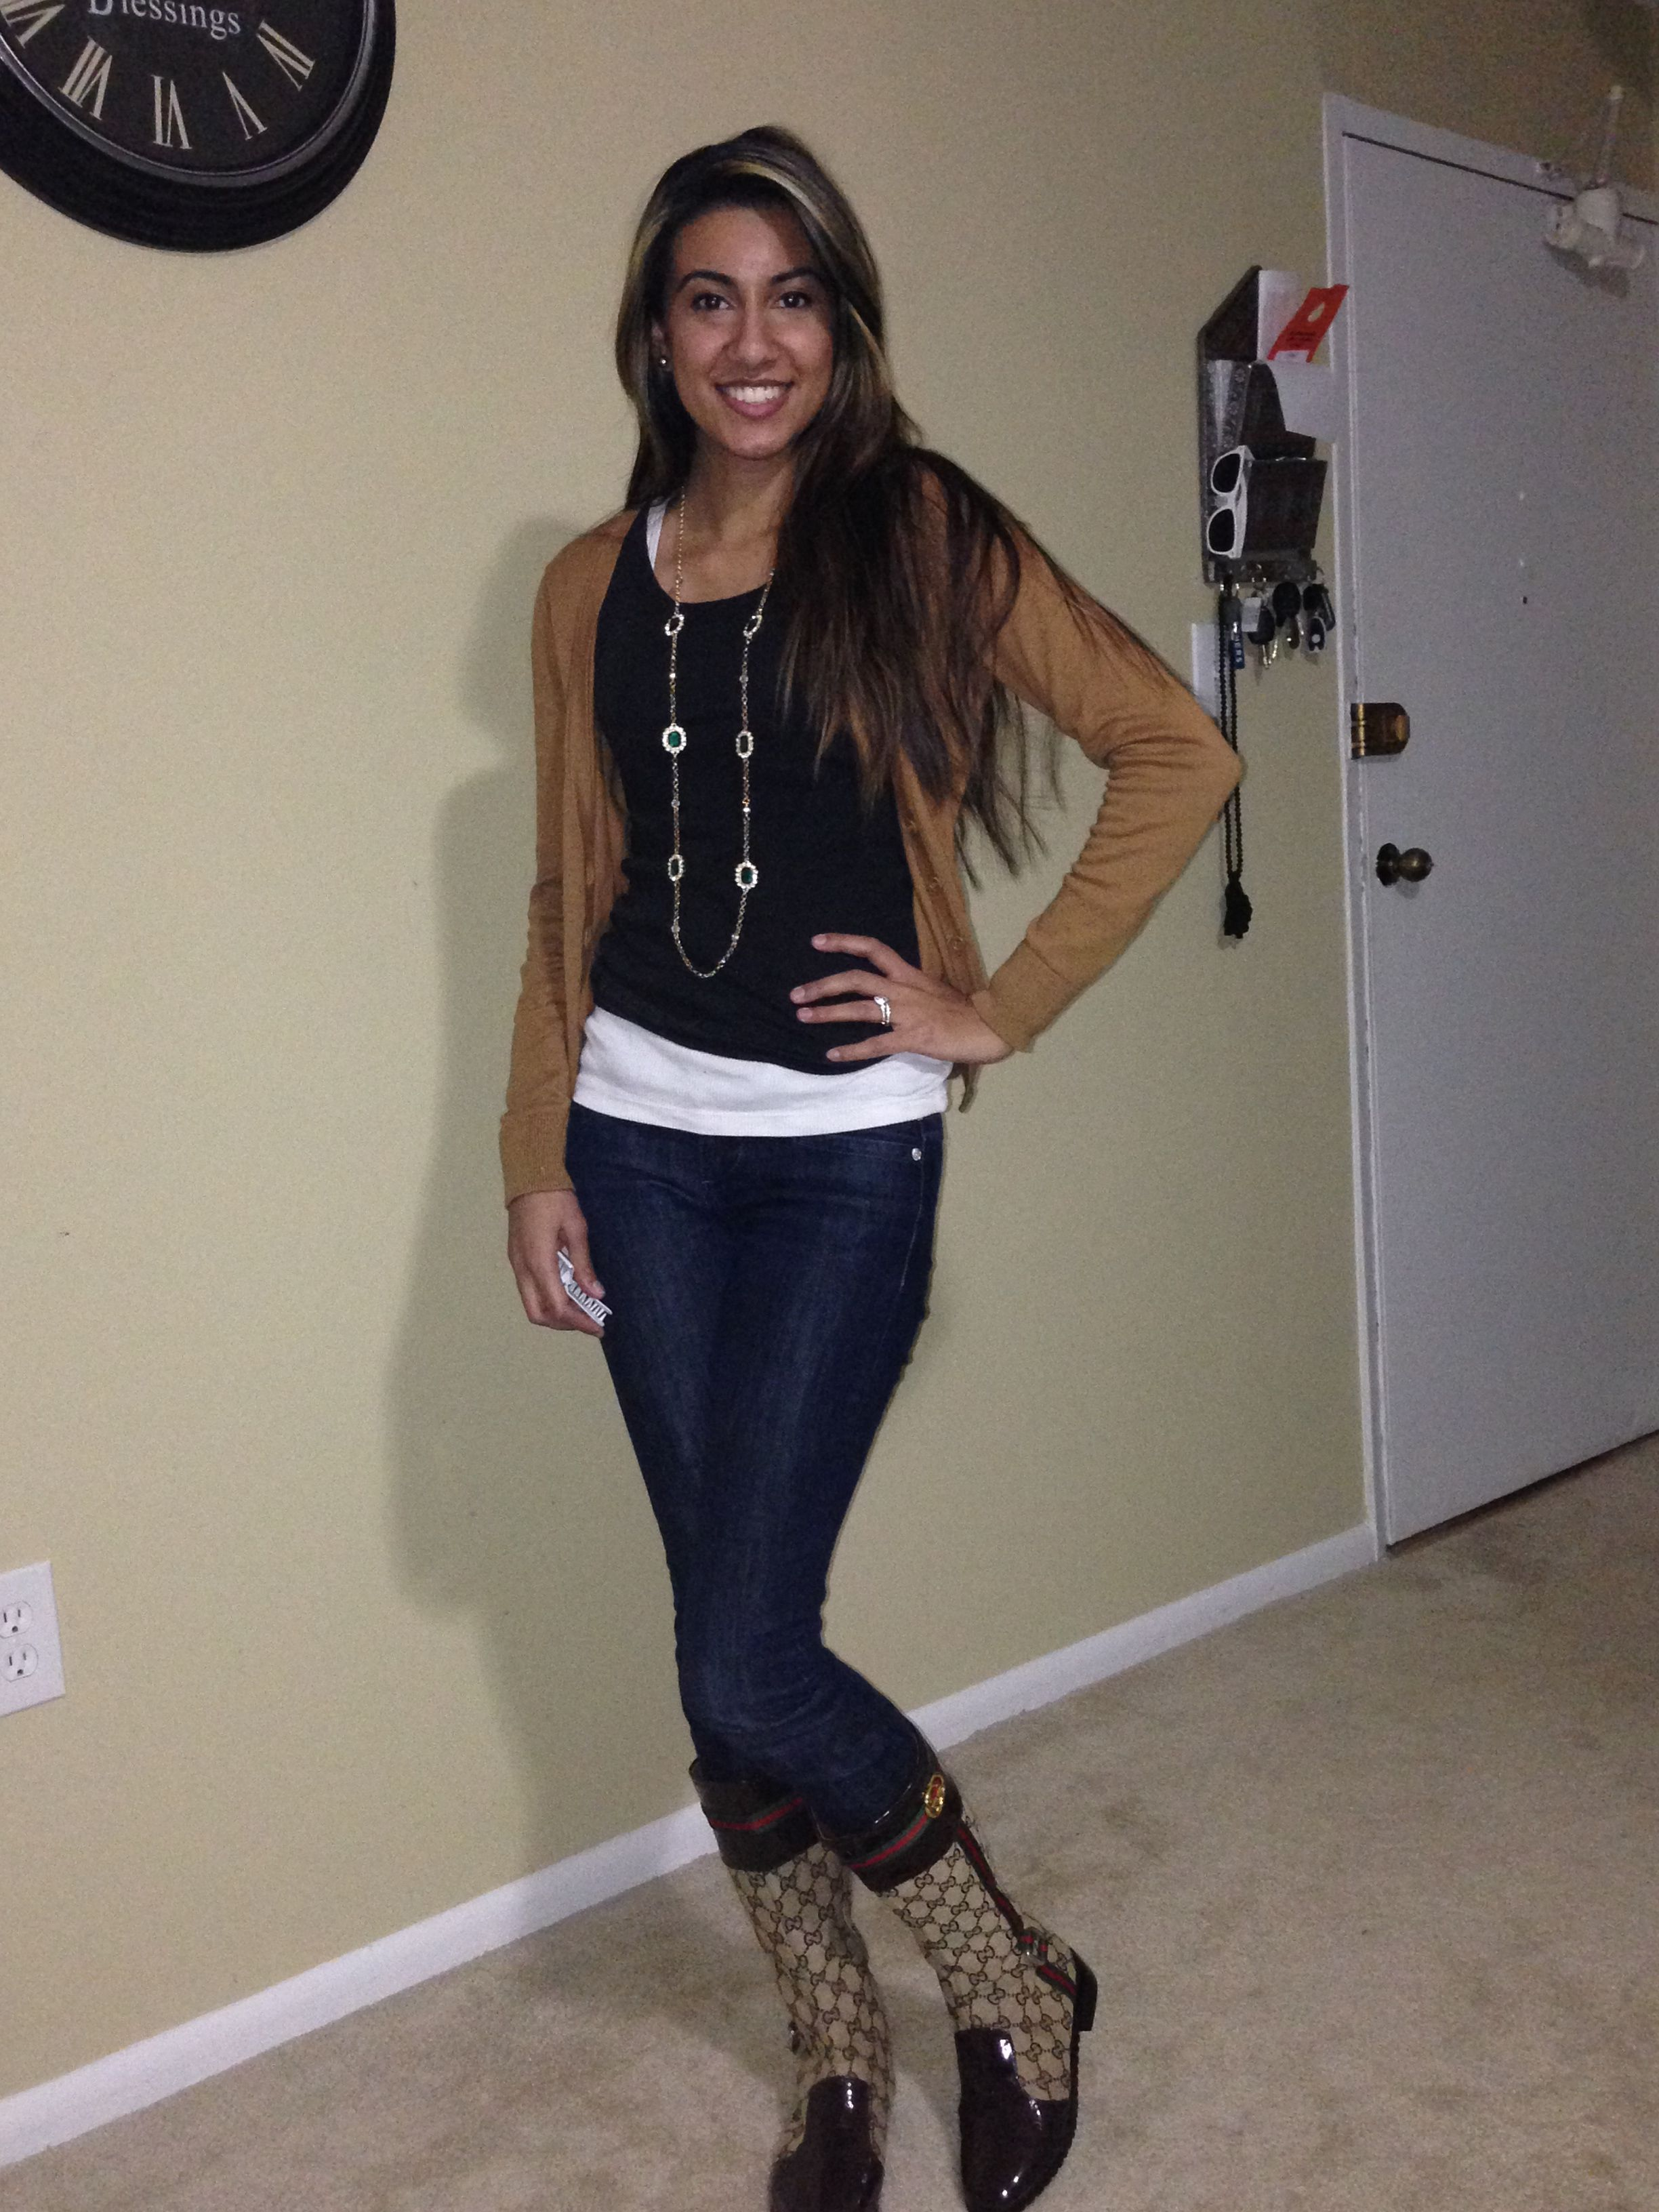 Brown outfit. Black shirt. Gucci boots. Emerald necklace